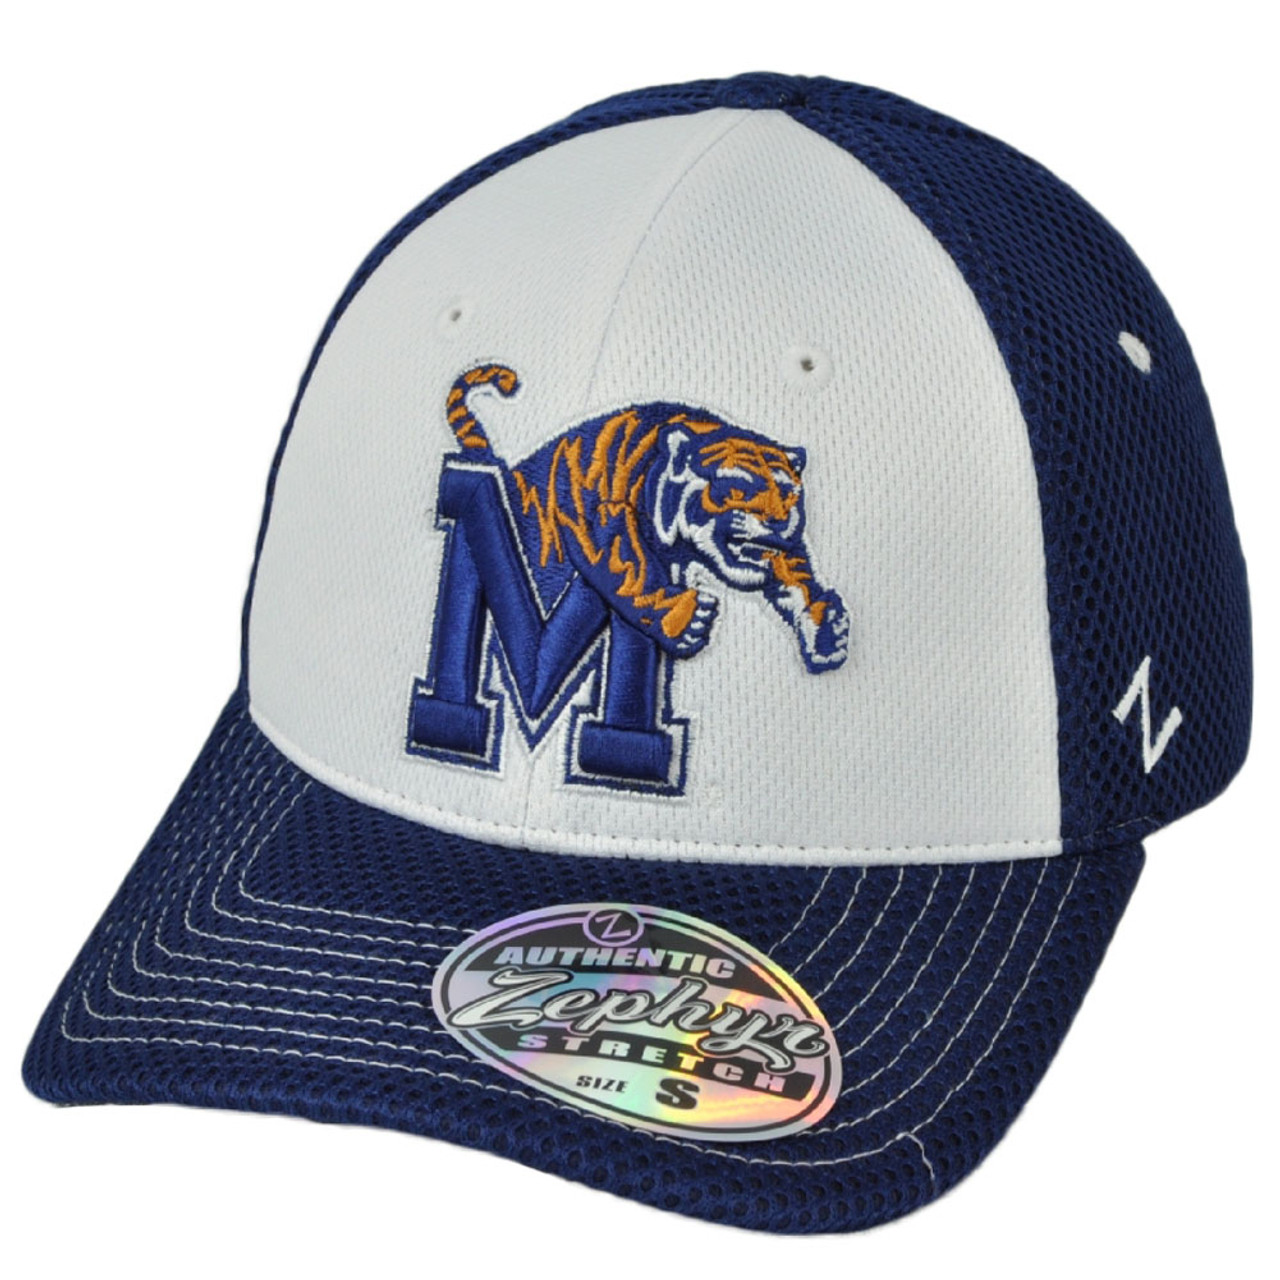 00f2e0262 NCAA Zephyr Memphis Tigers Flex Fit Small Blue White Hat Cap Curved Bill  Stretch